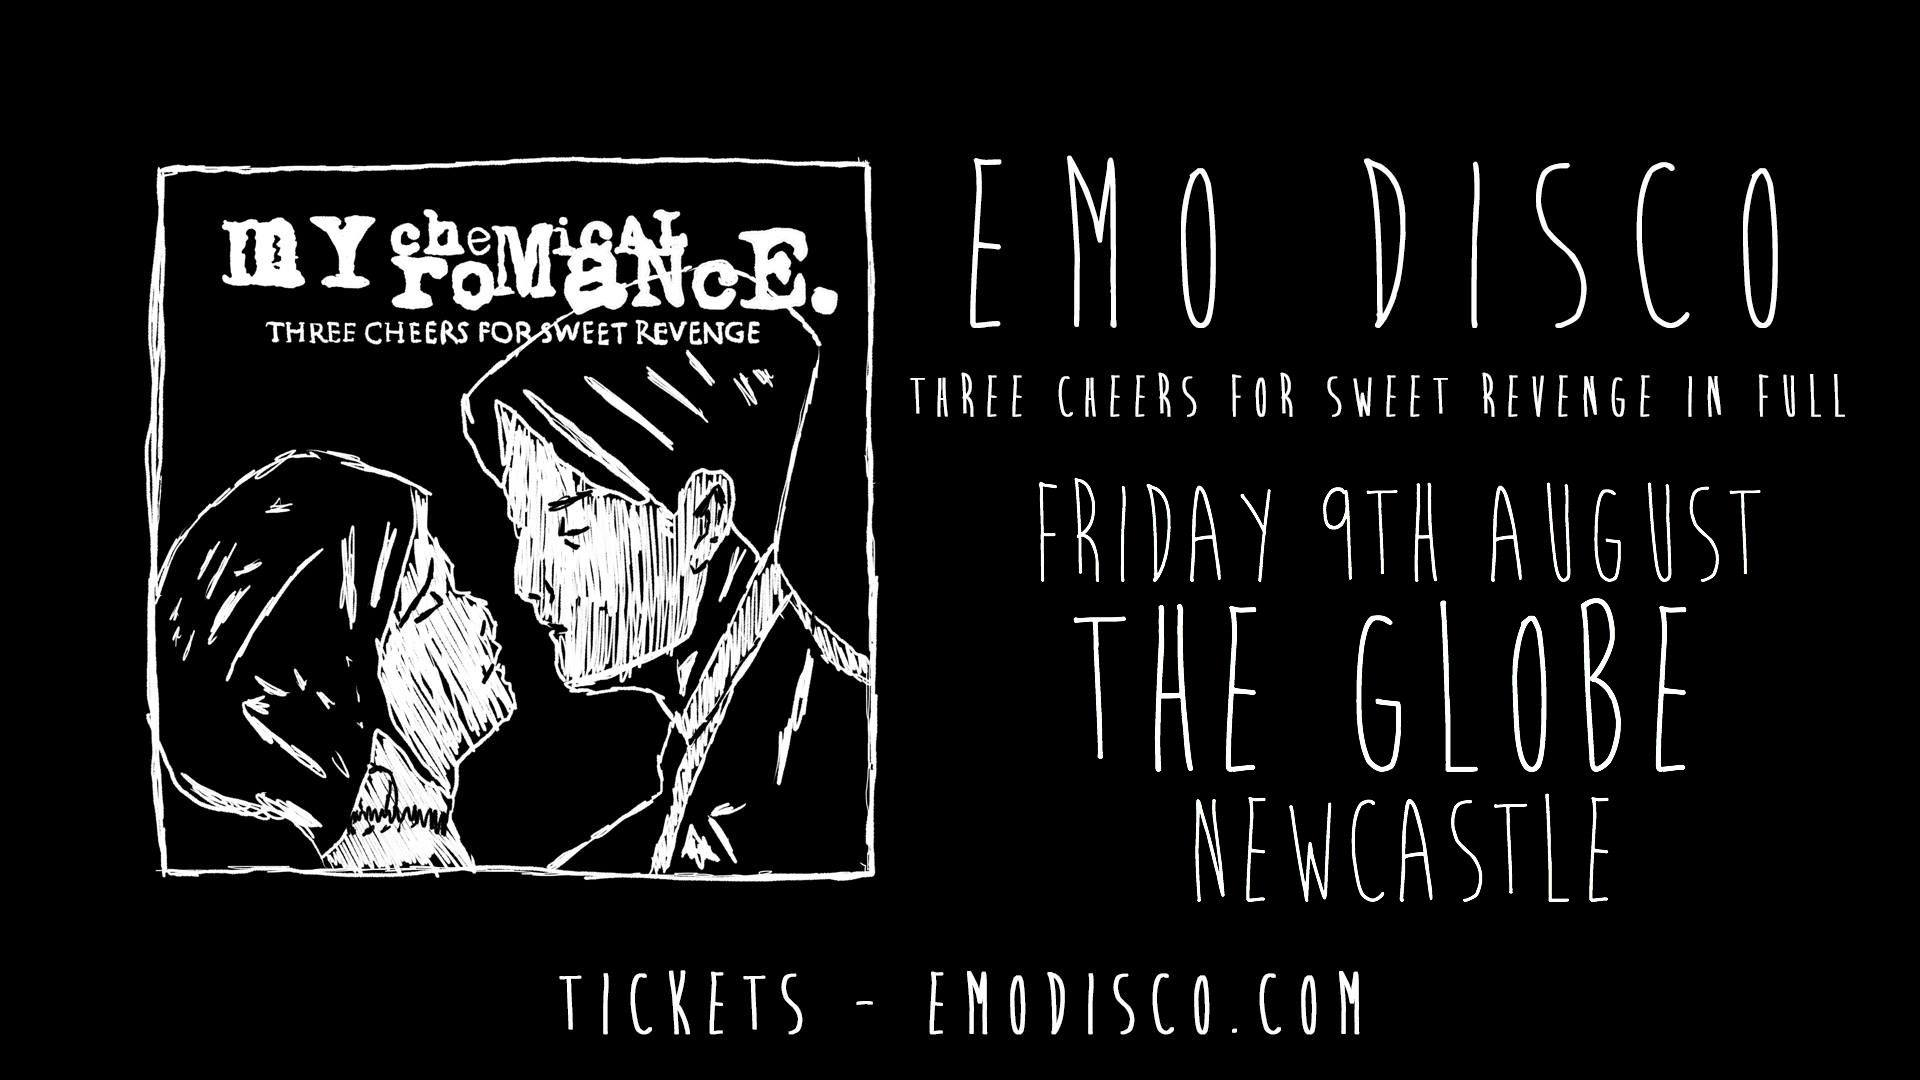 Emo Disco Three Cheers For Sweet Revenge Line Up